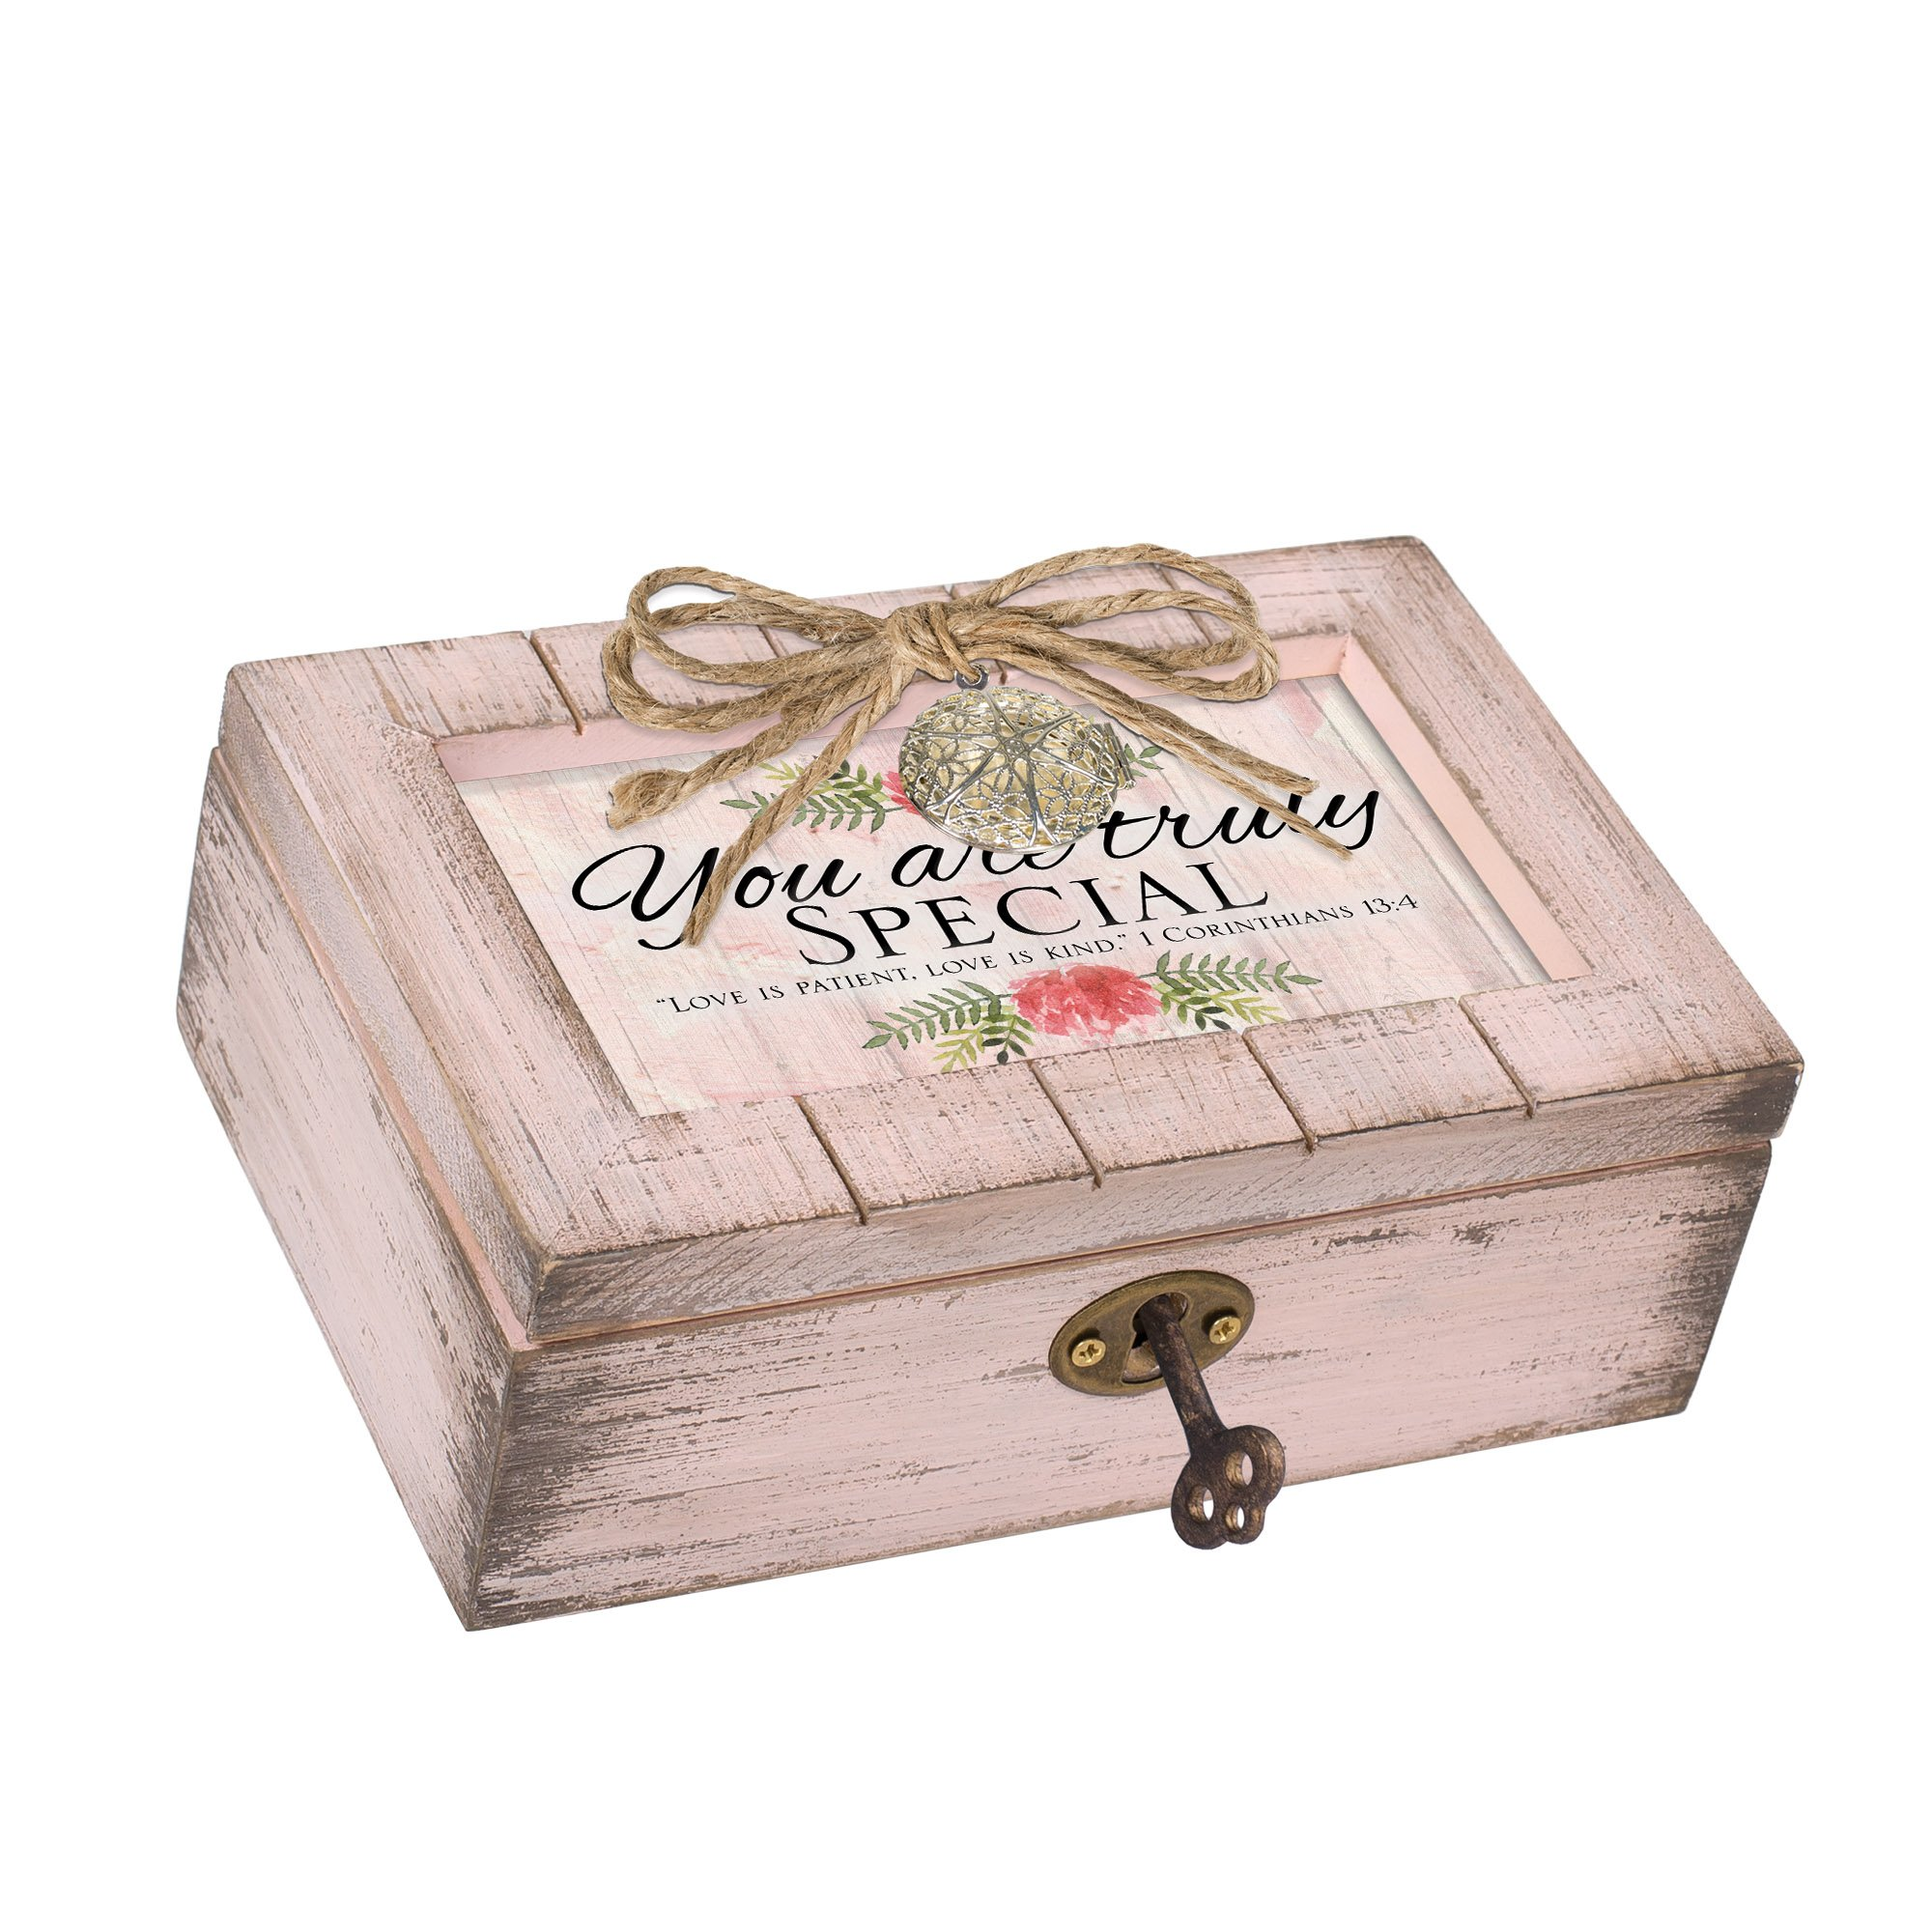 Cottage Garden You Are Truly Special Blush Pink Distressed Locket Petite Music Box Plays Amazing Grace